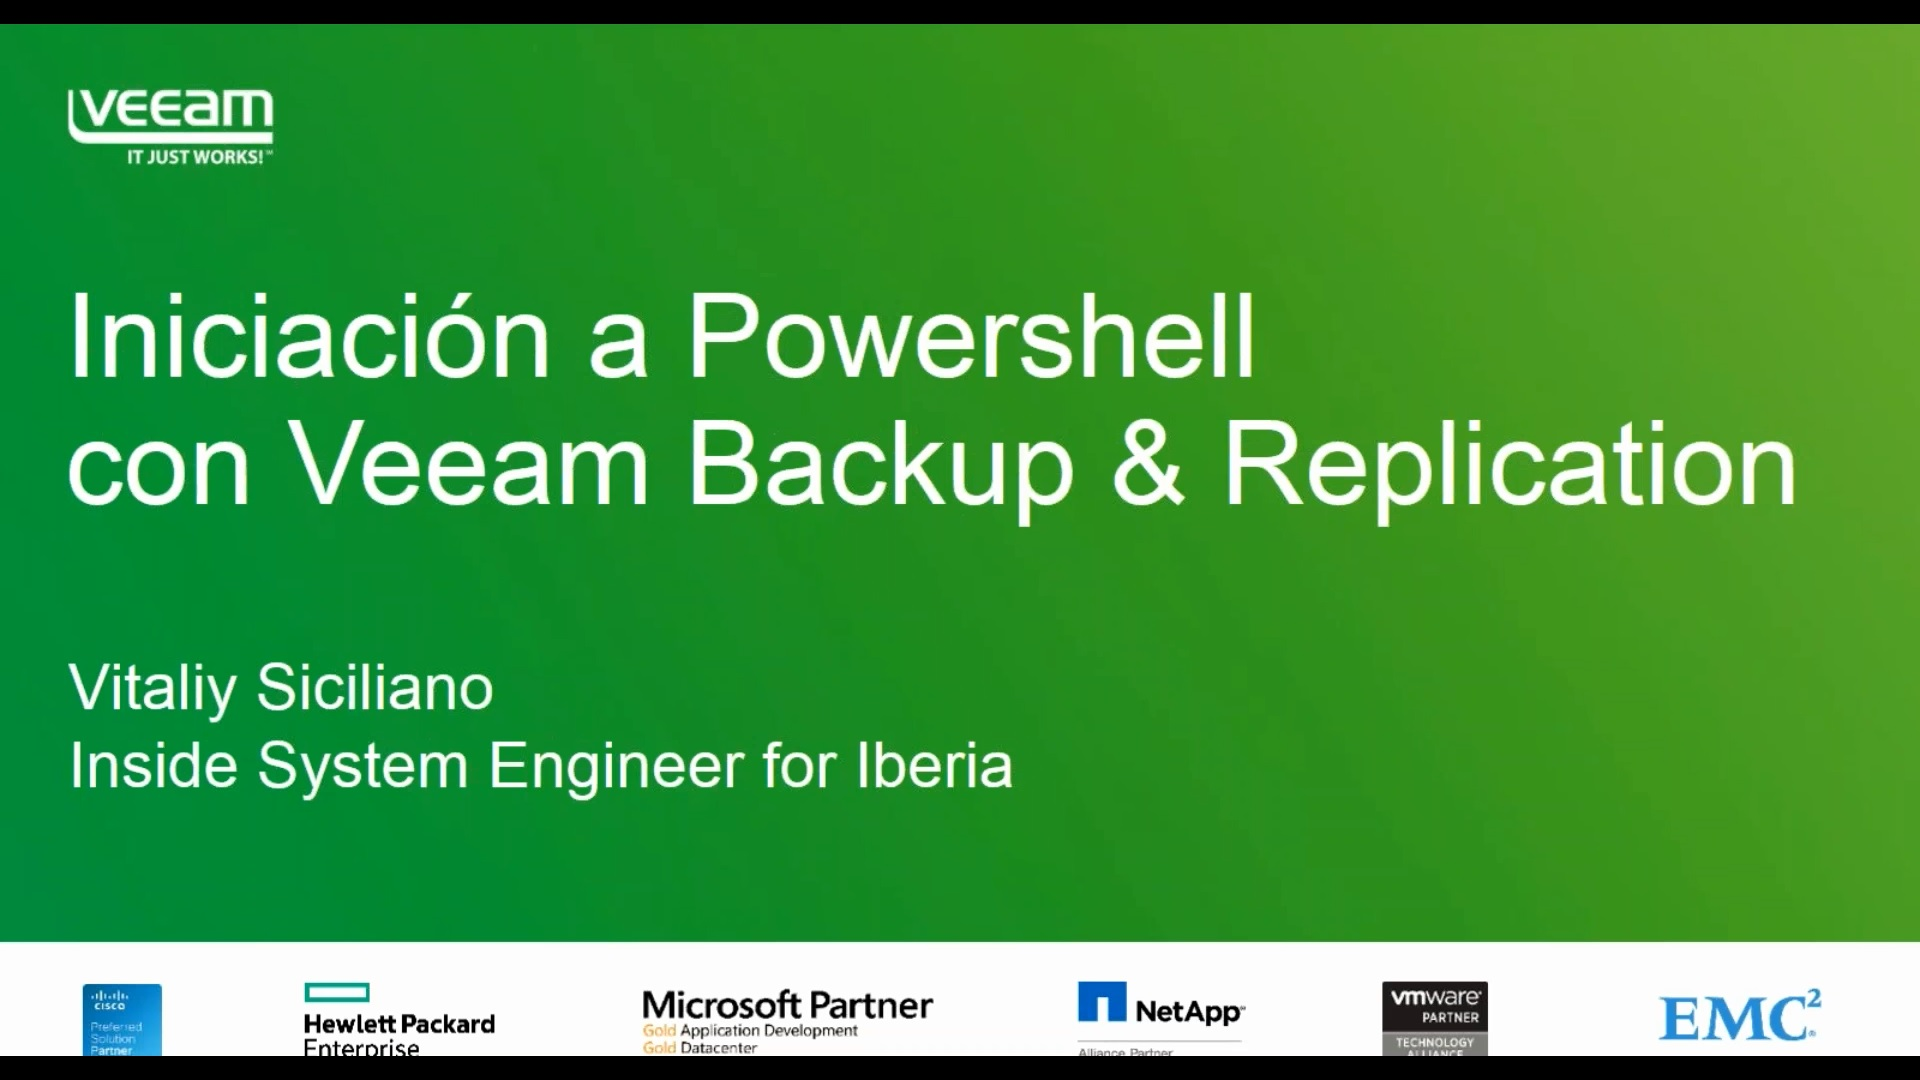 Primeros pasos con Powershell en Veeam Backup & Replication